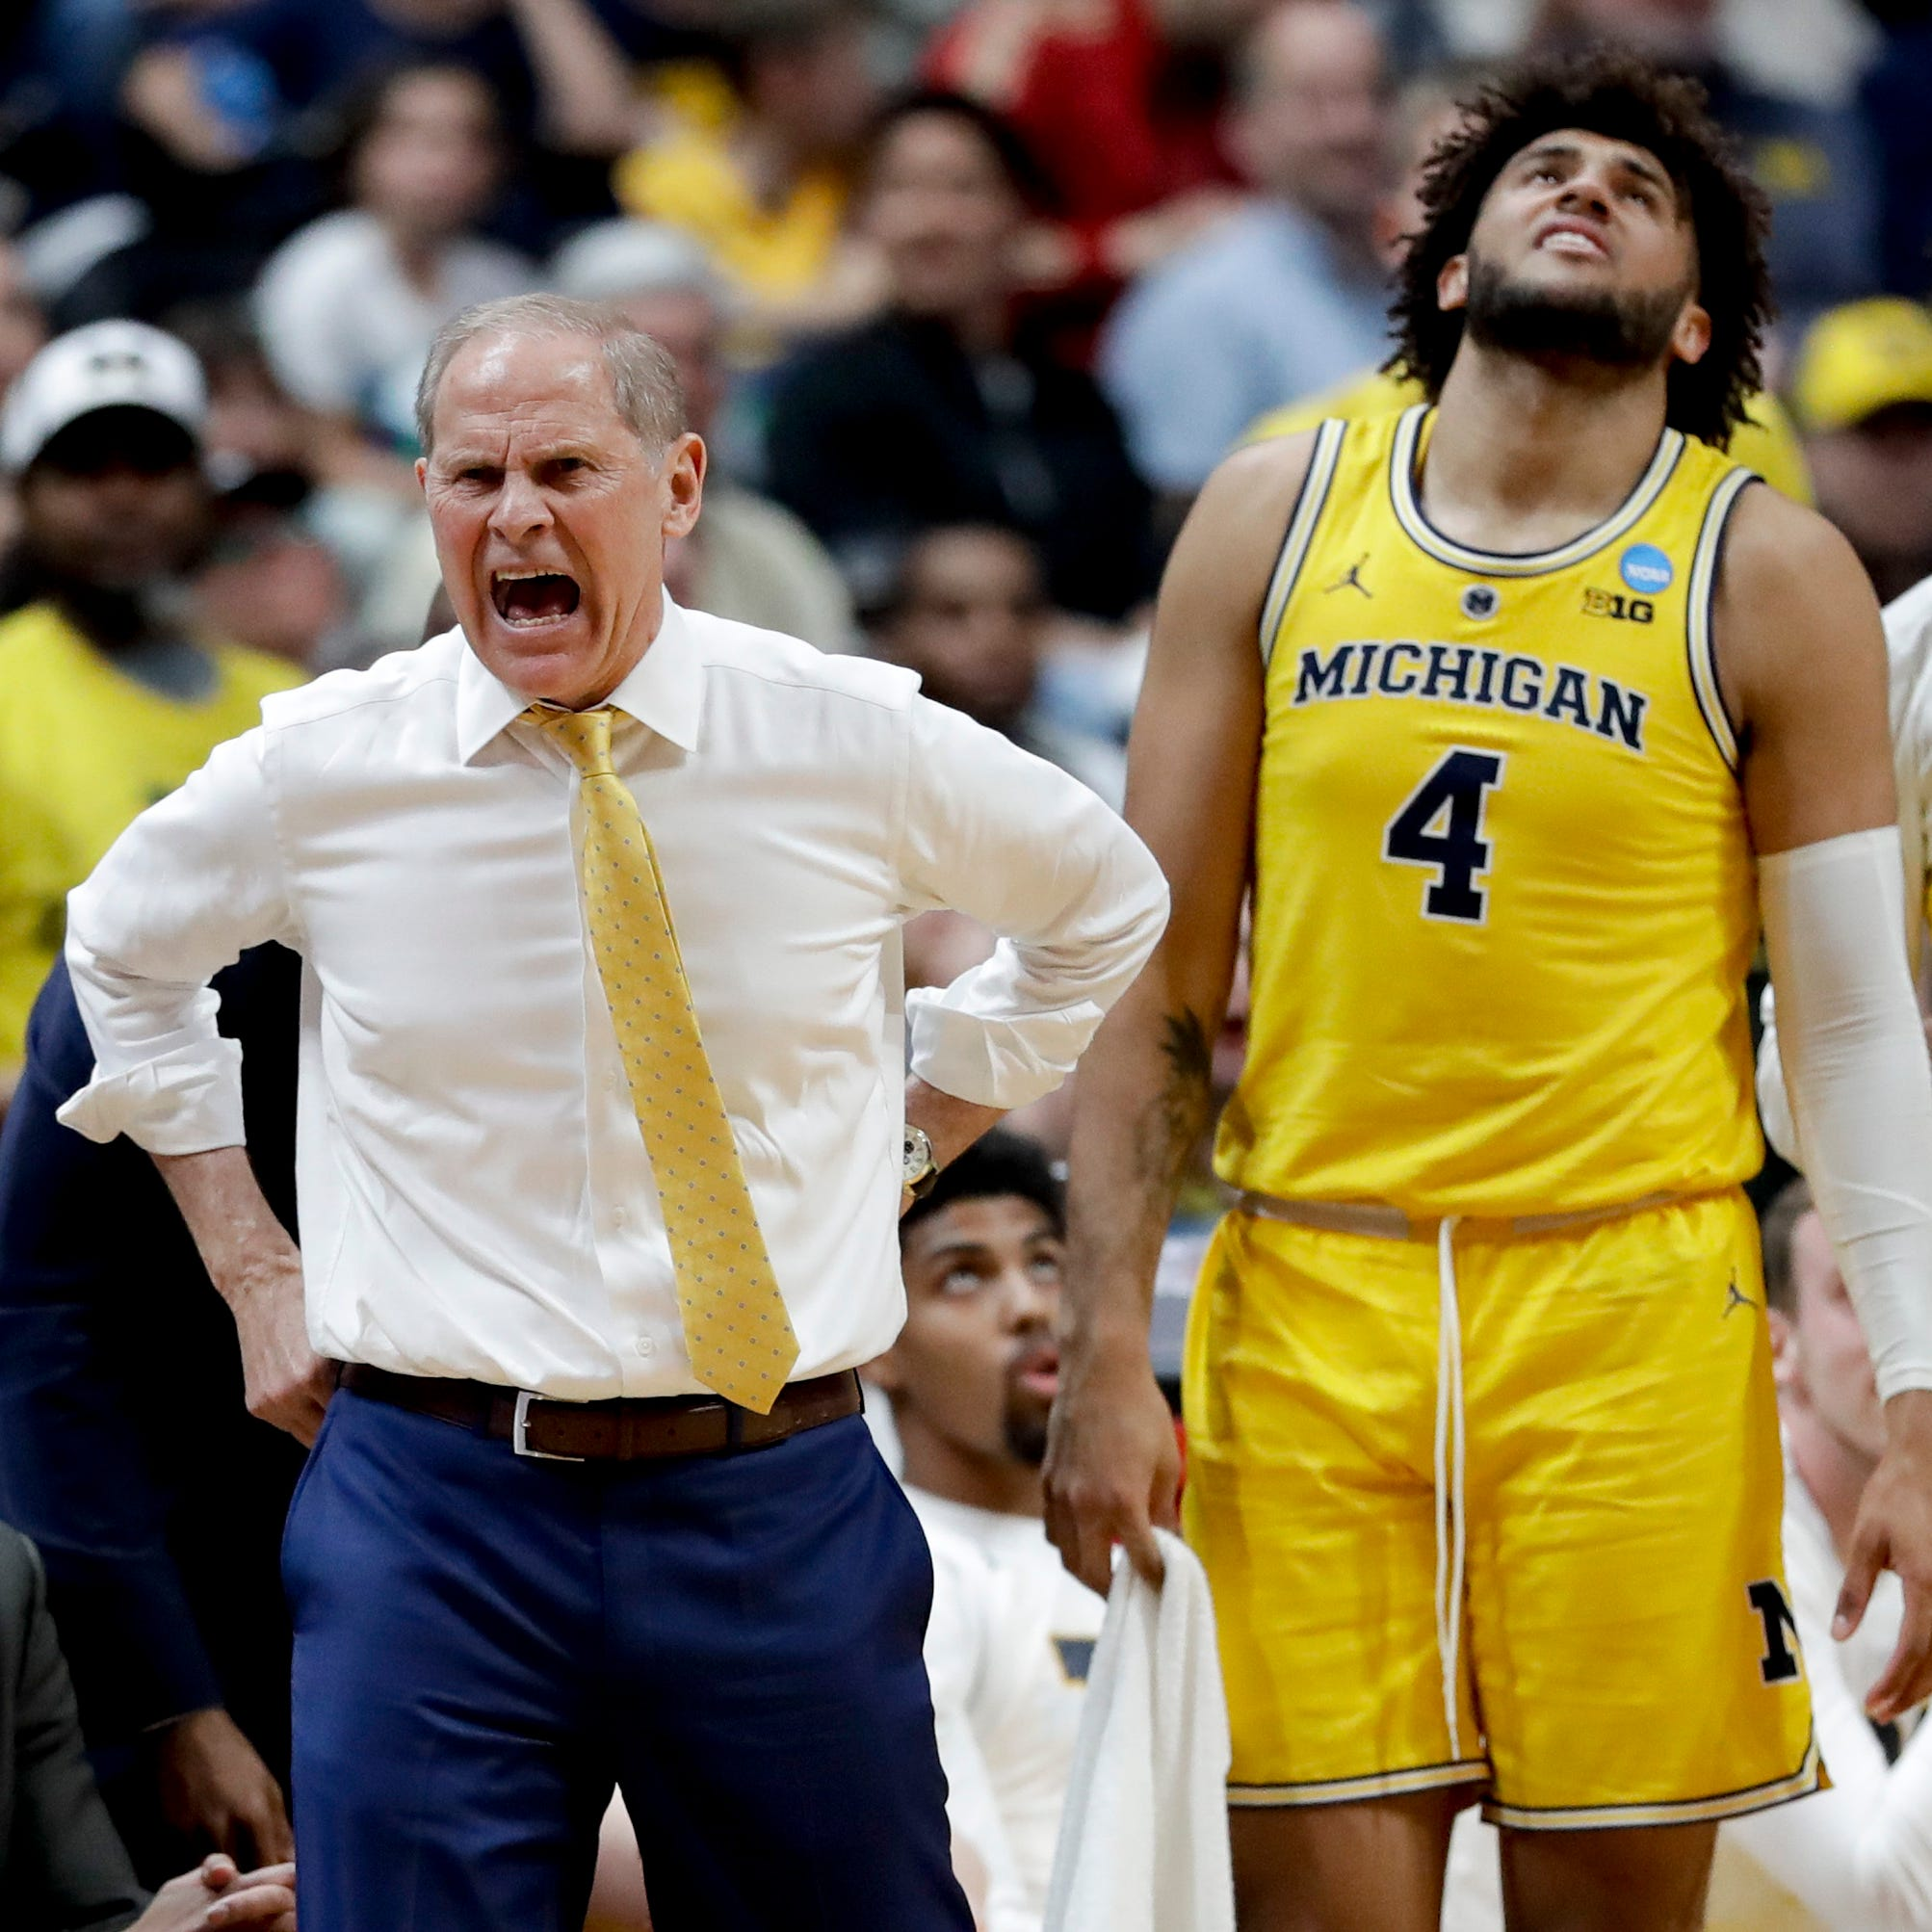 'A bad day': Michigan season ends with a thud in 19-point loss to Texas Tech